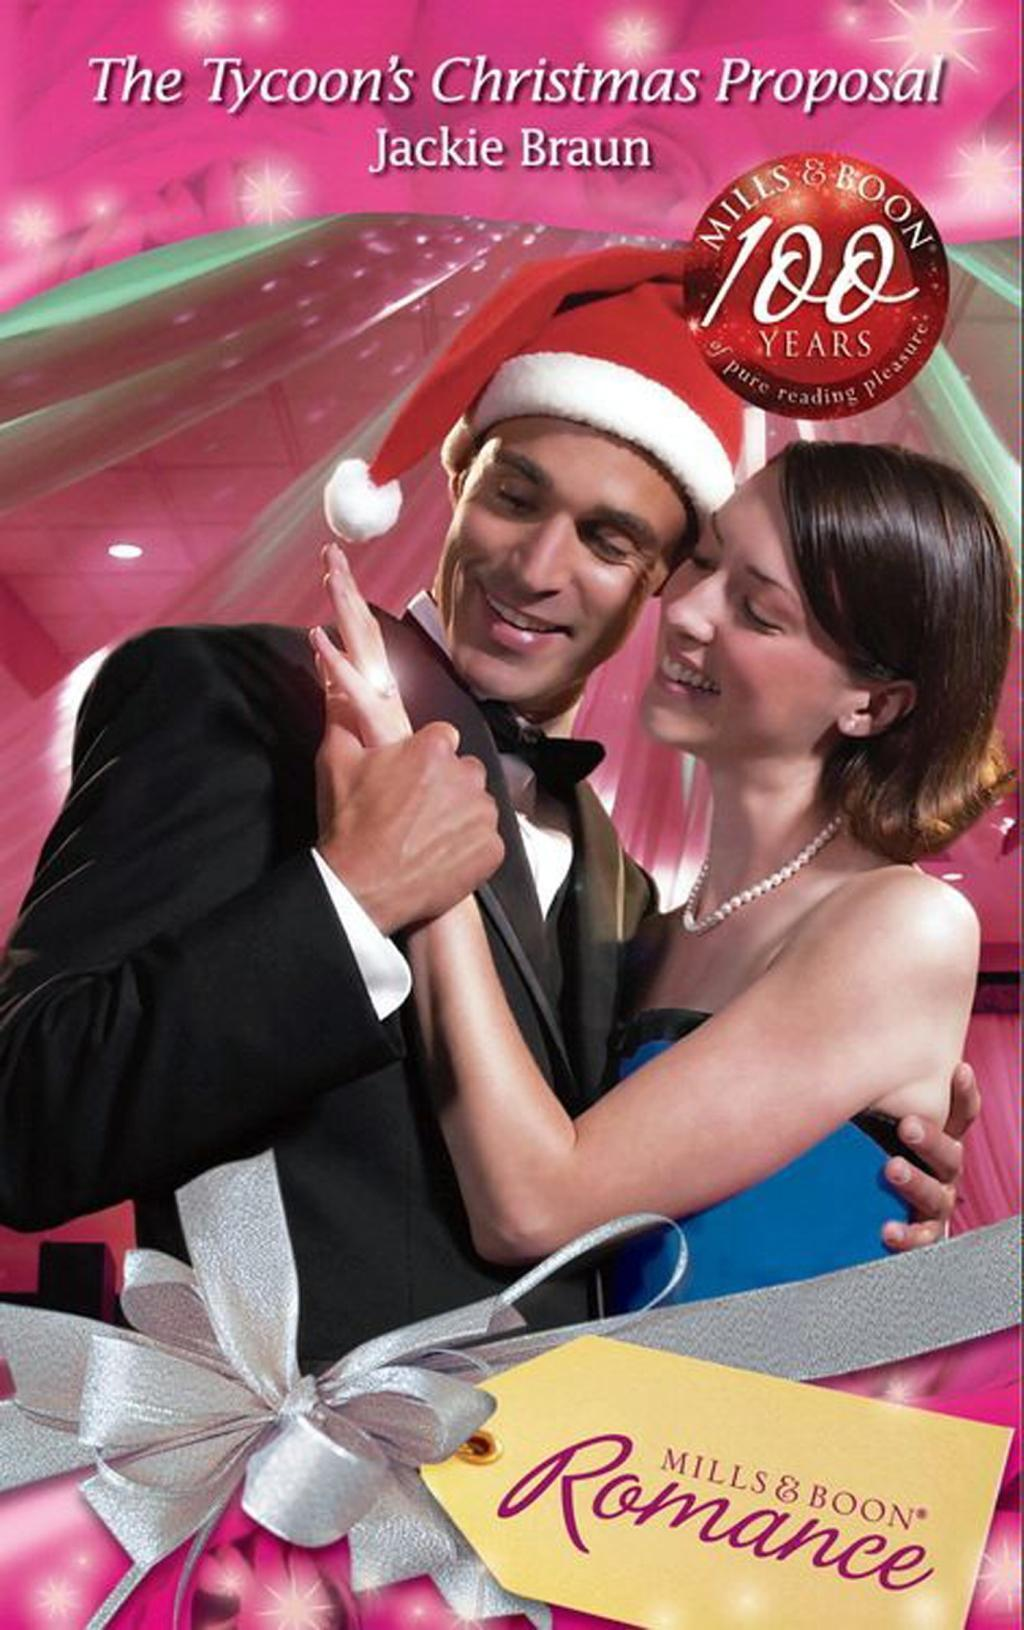 The Tycoon's Christmas Proposal (Mills & Boon Romance)